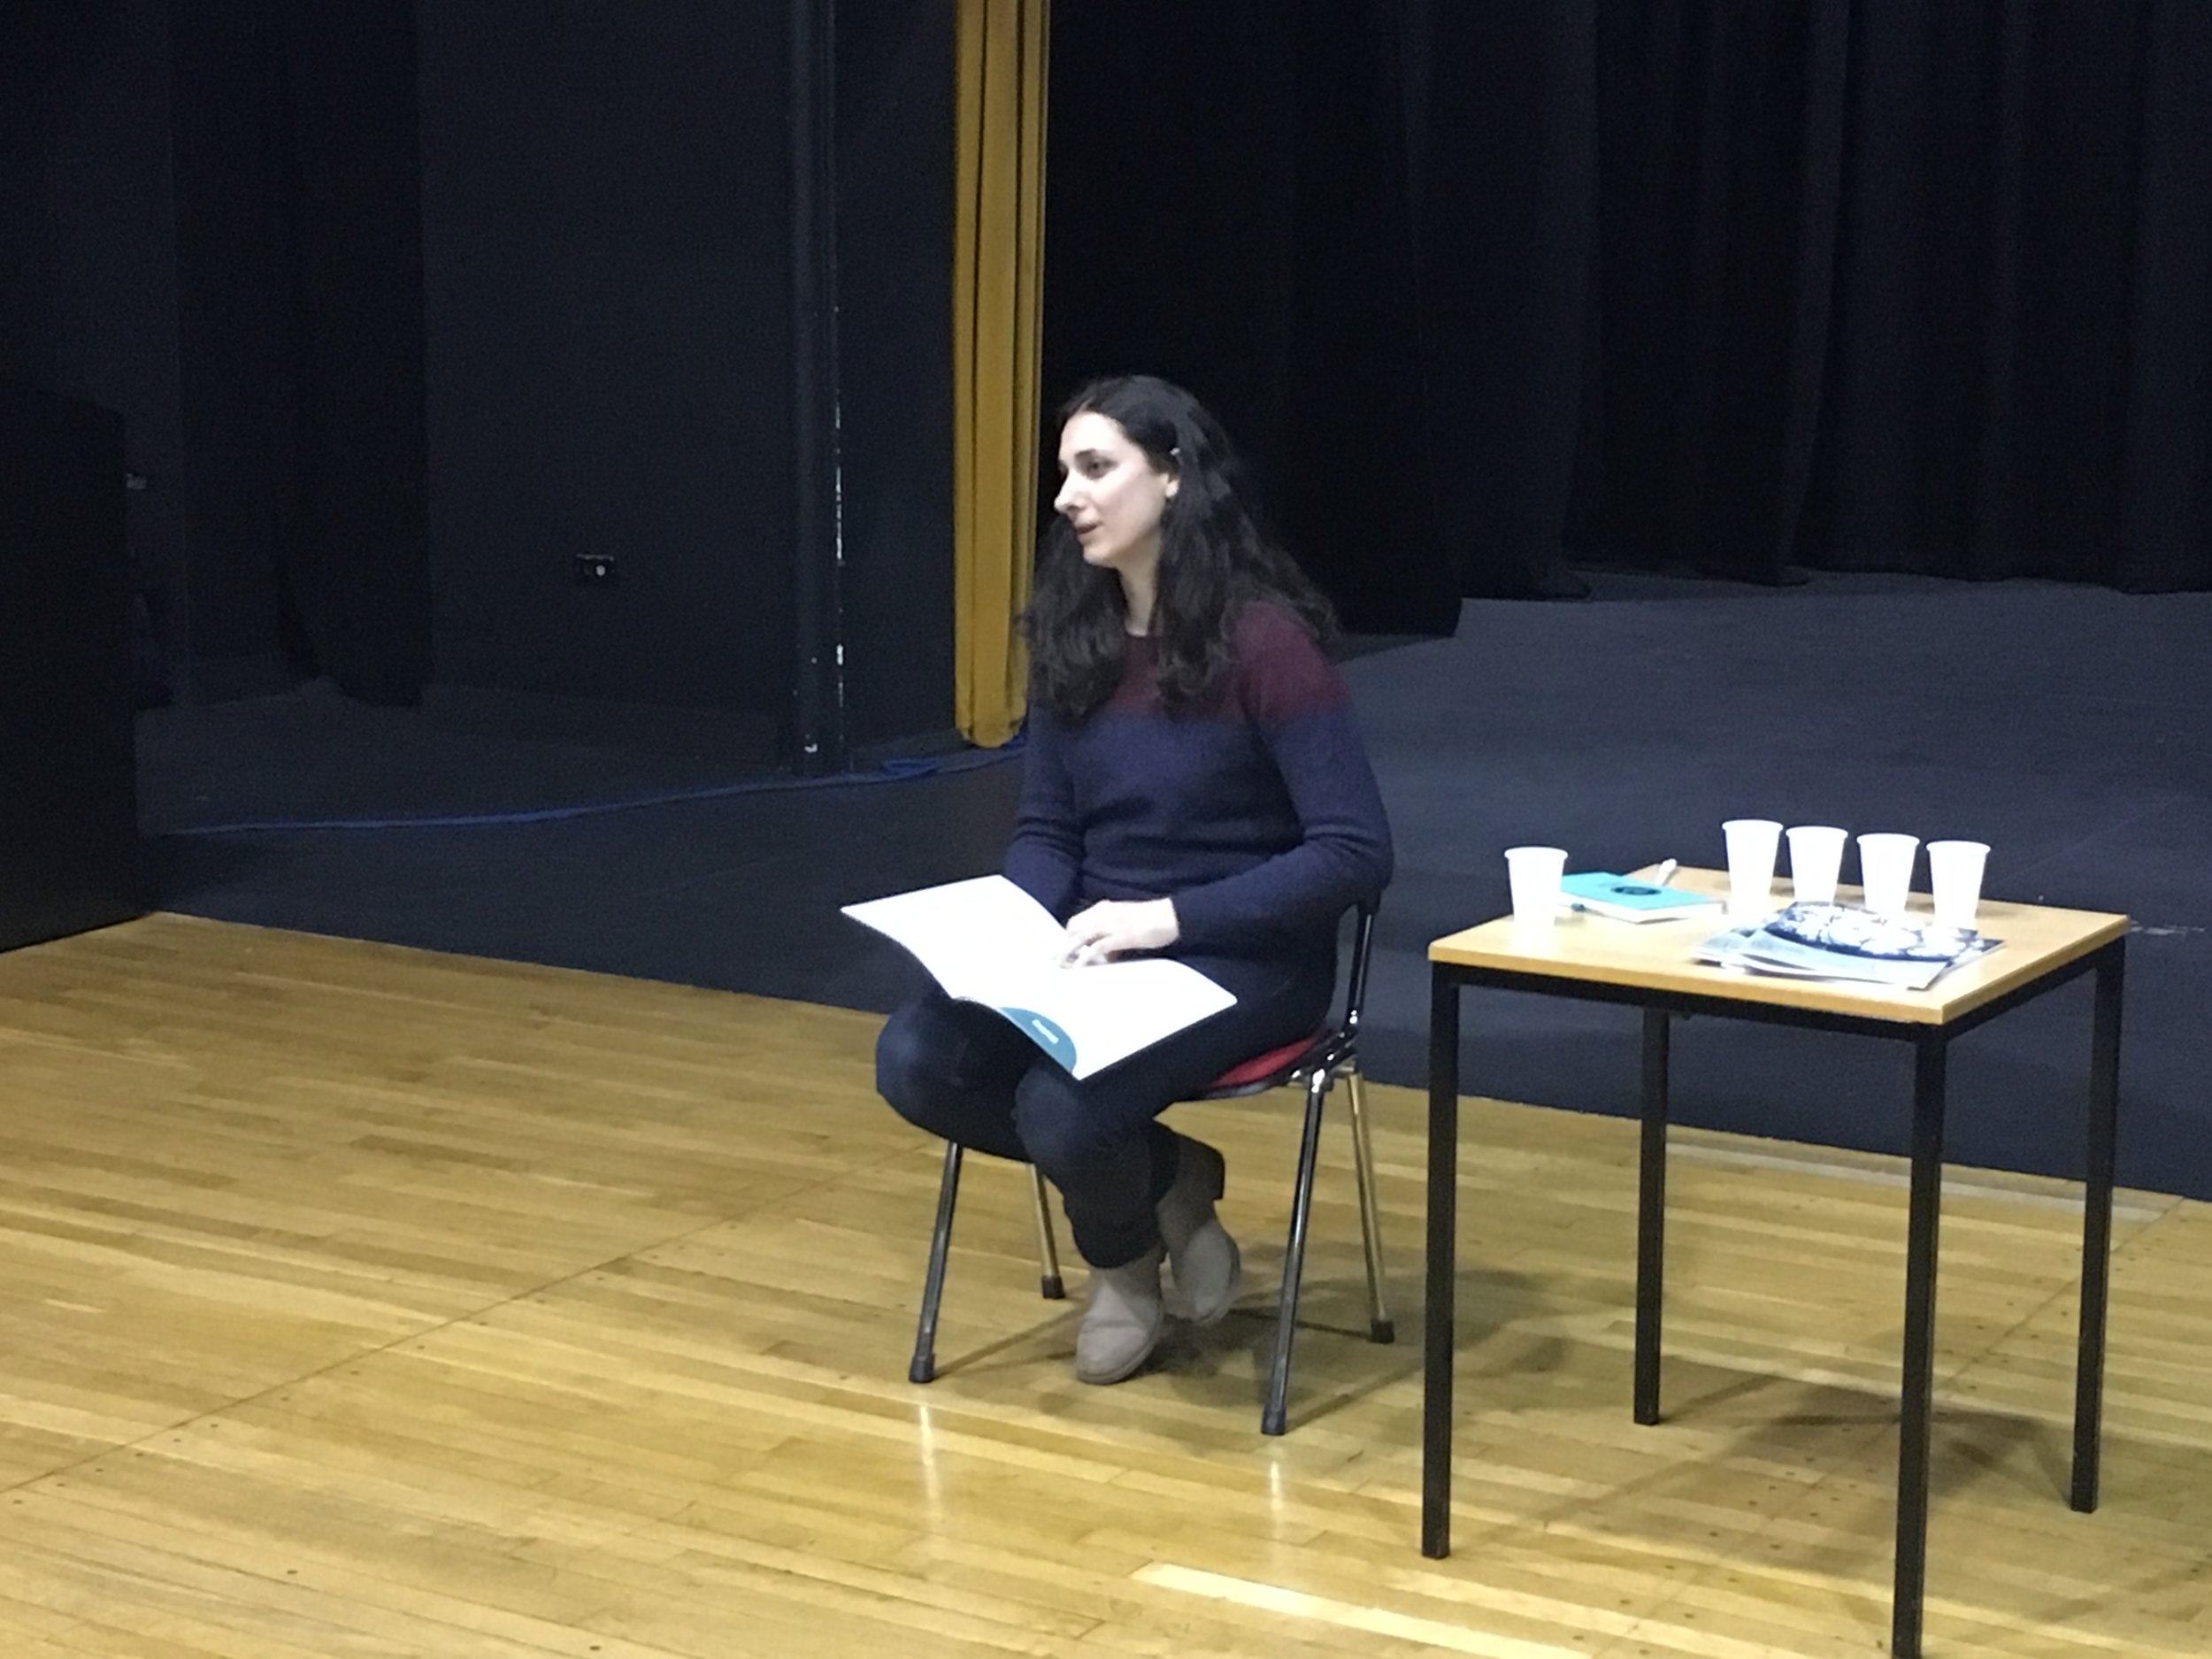 Kristina Gavran, a PhD student in Storytelling at Loughborough University, read her published poem, 'Waiting'. We love how Kristina chose to sit down and own the space for her reading!